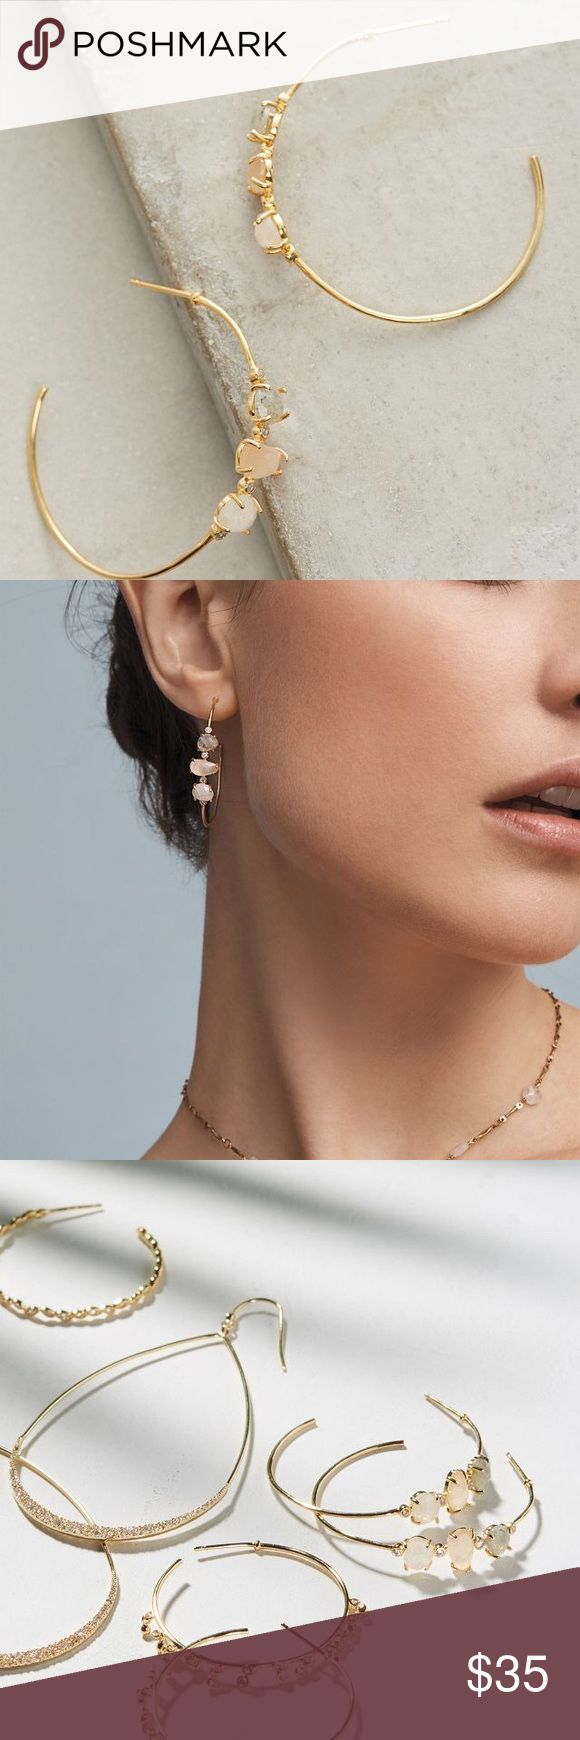 """Anthropologie earrings. Sweet birthday present, but I know I'll never wear them.  Hoop earrings with post closure. Measures 1.5"""".  12 karat gold plated metal with tricolor glass gems. Anthropologie Jewelry Earrings"""